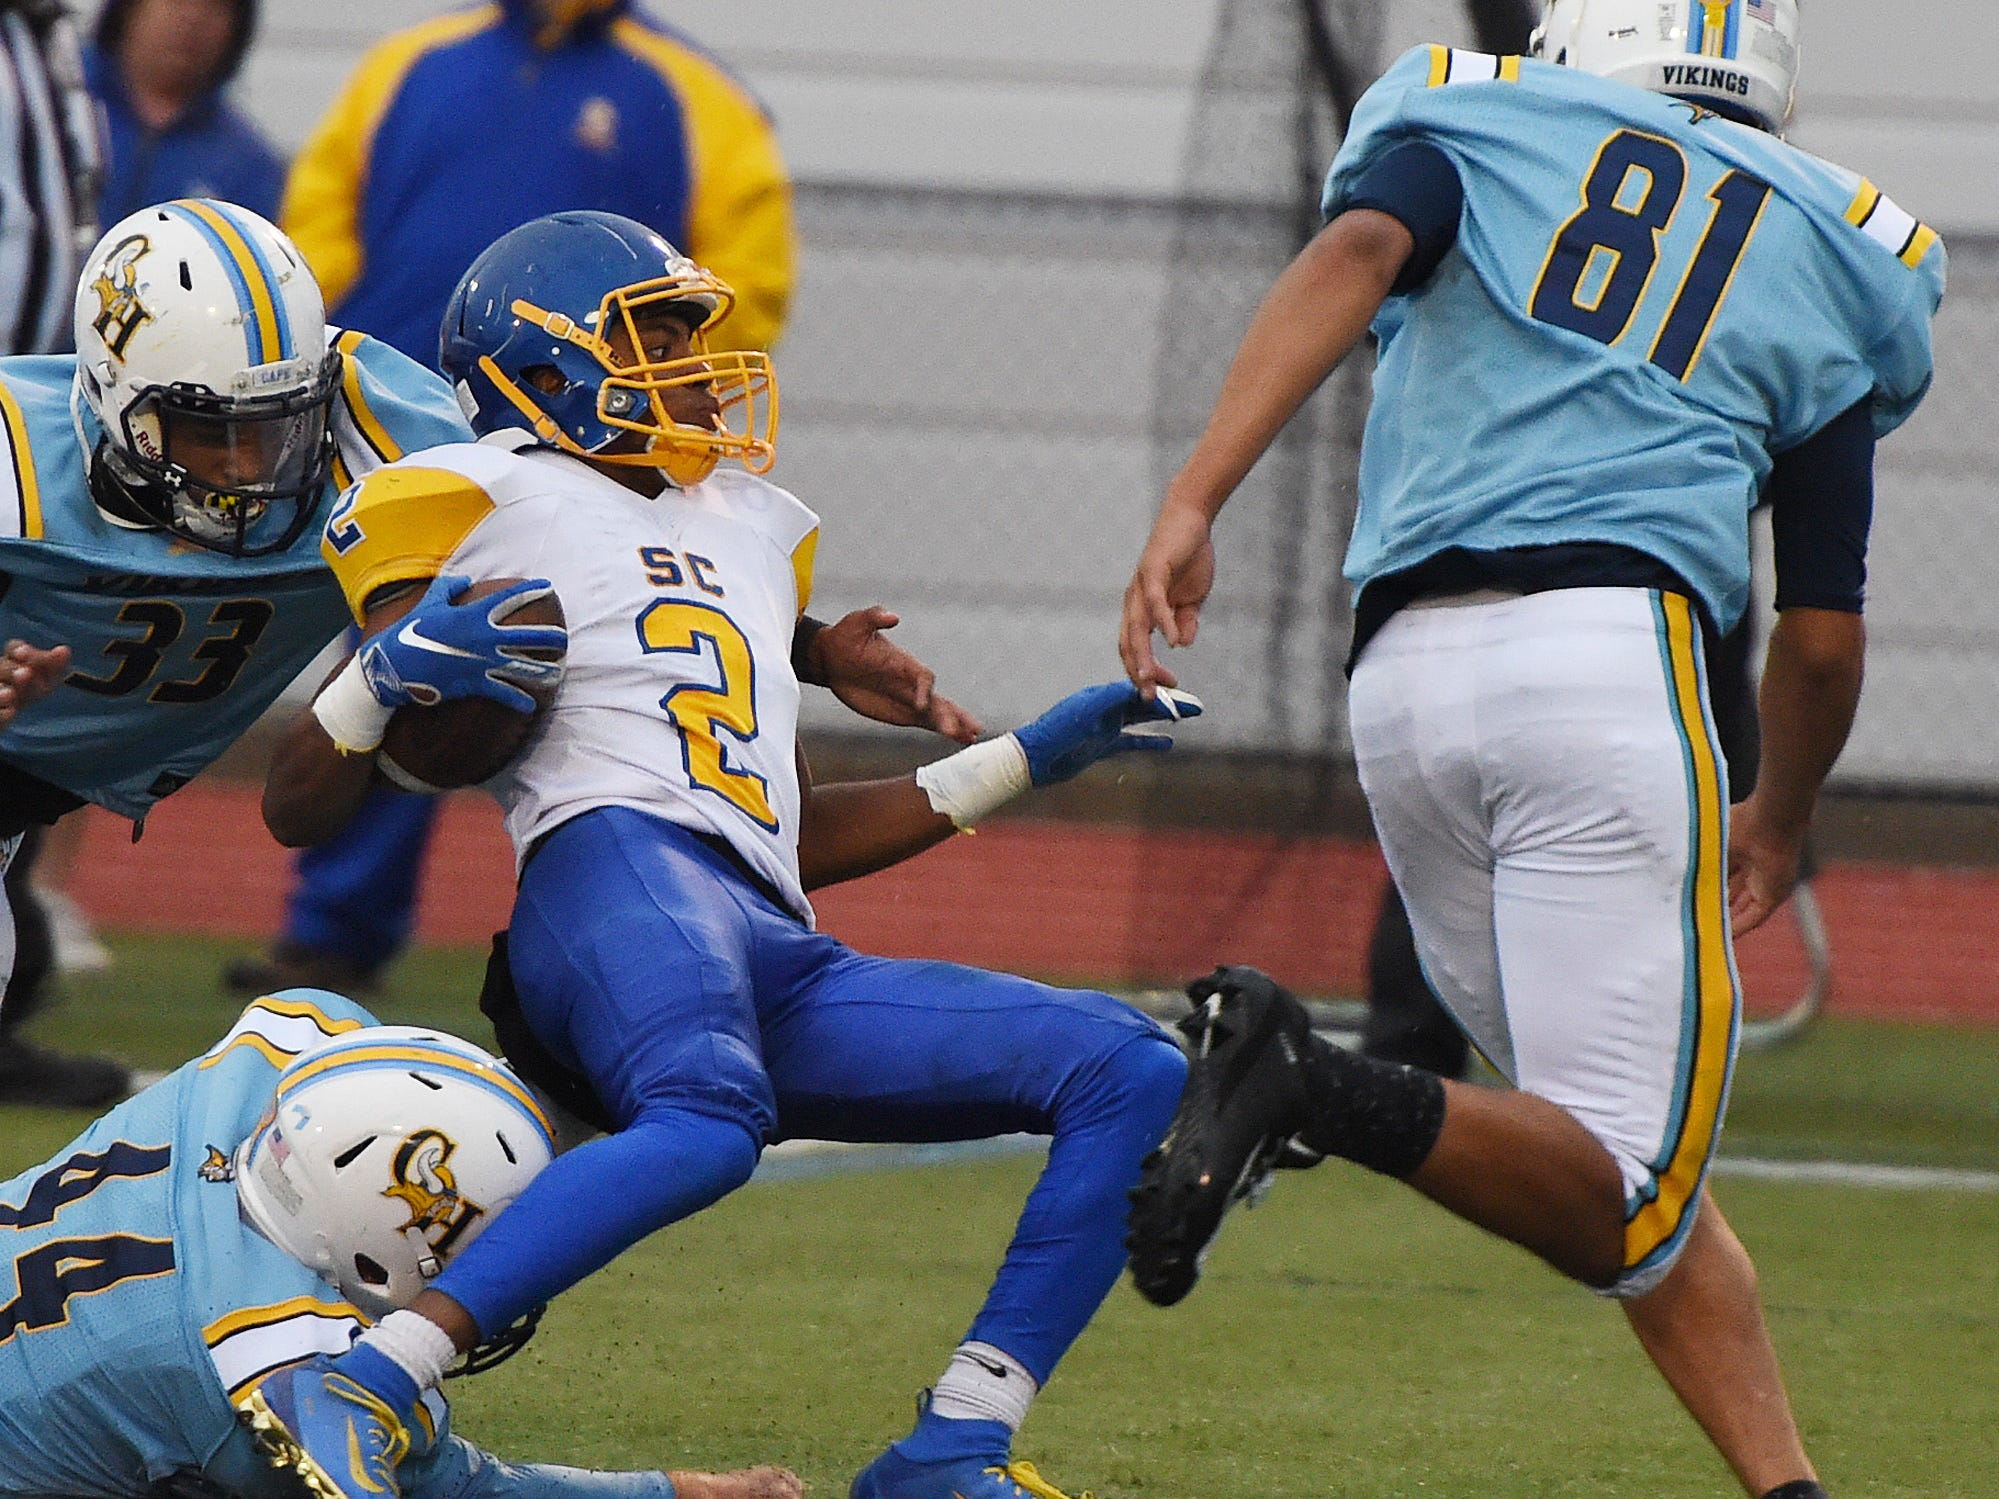 Sussex Central's Shihiem Williams gets brought down by Cape defenders  during their game Oct. 26, 2018.